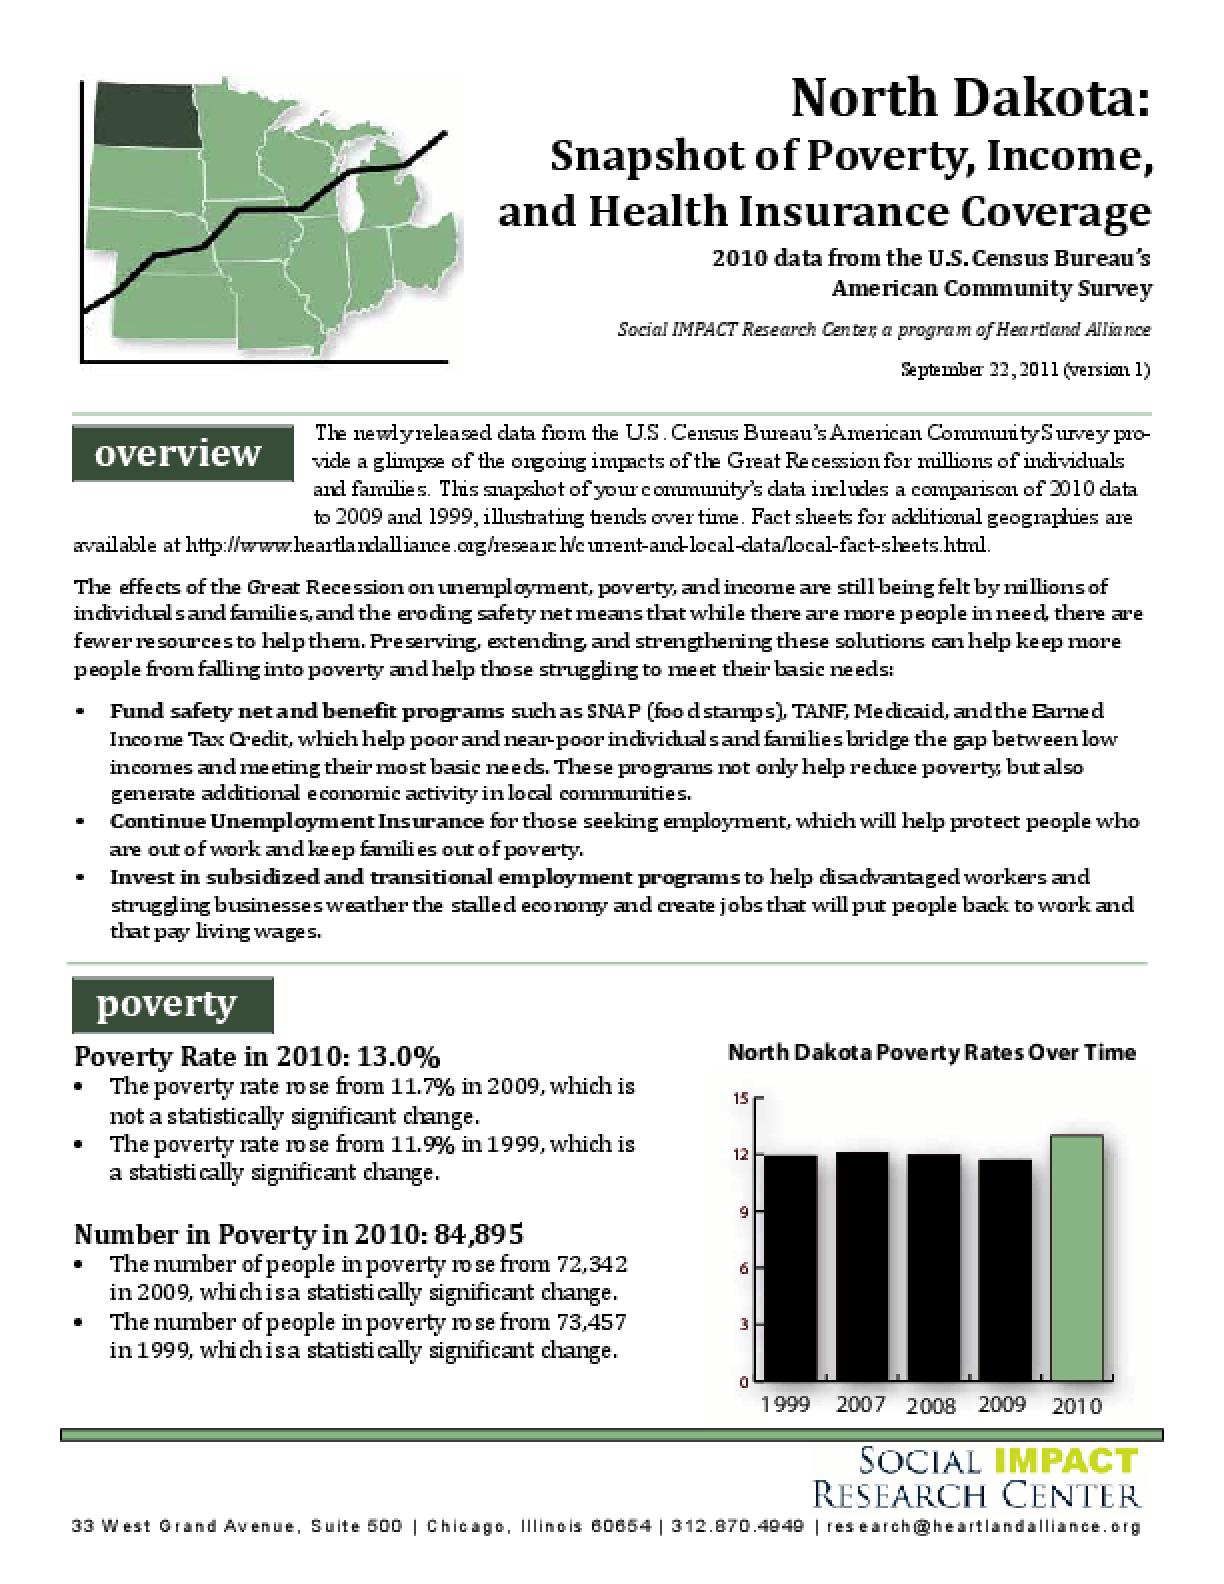 North Dakota: Snapshot of Poverty, Income, and Health Insurance Coverage